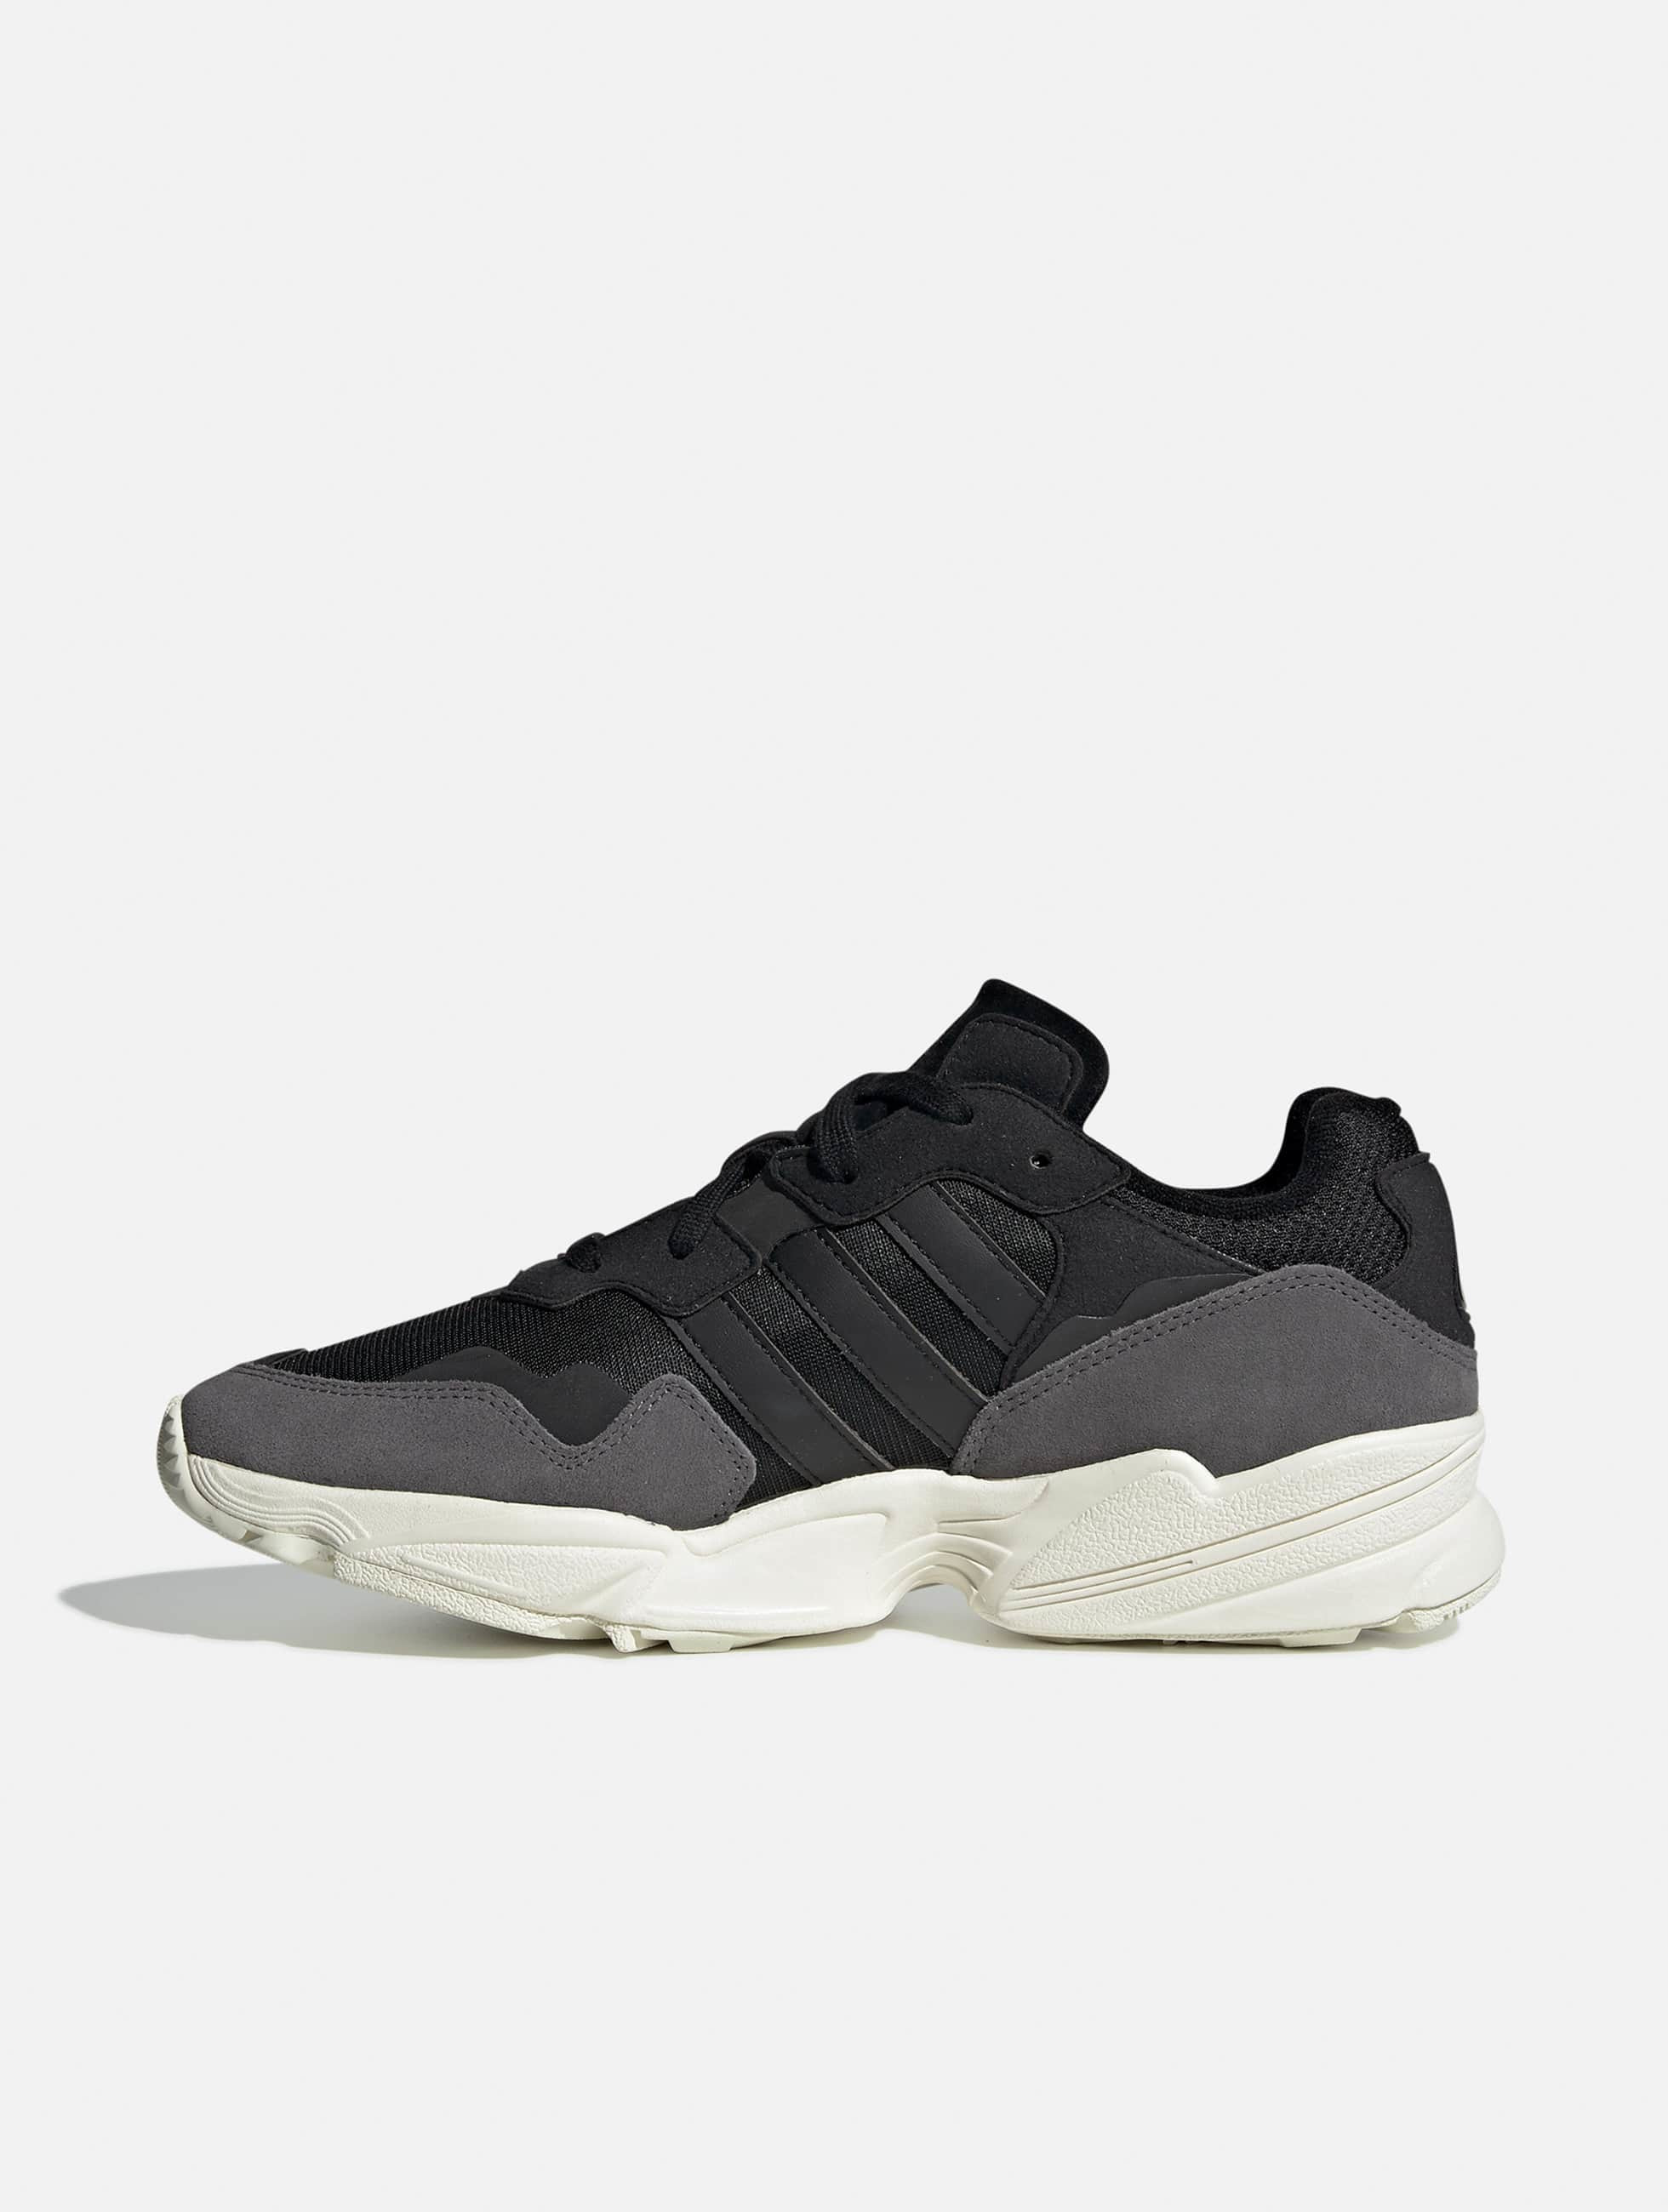 adidas originals Swift Run Summer (grau) Sneaker bei